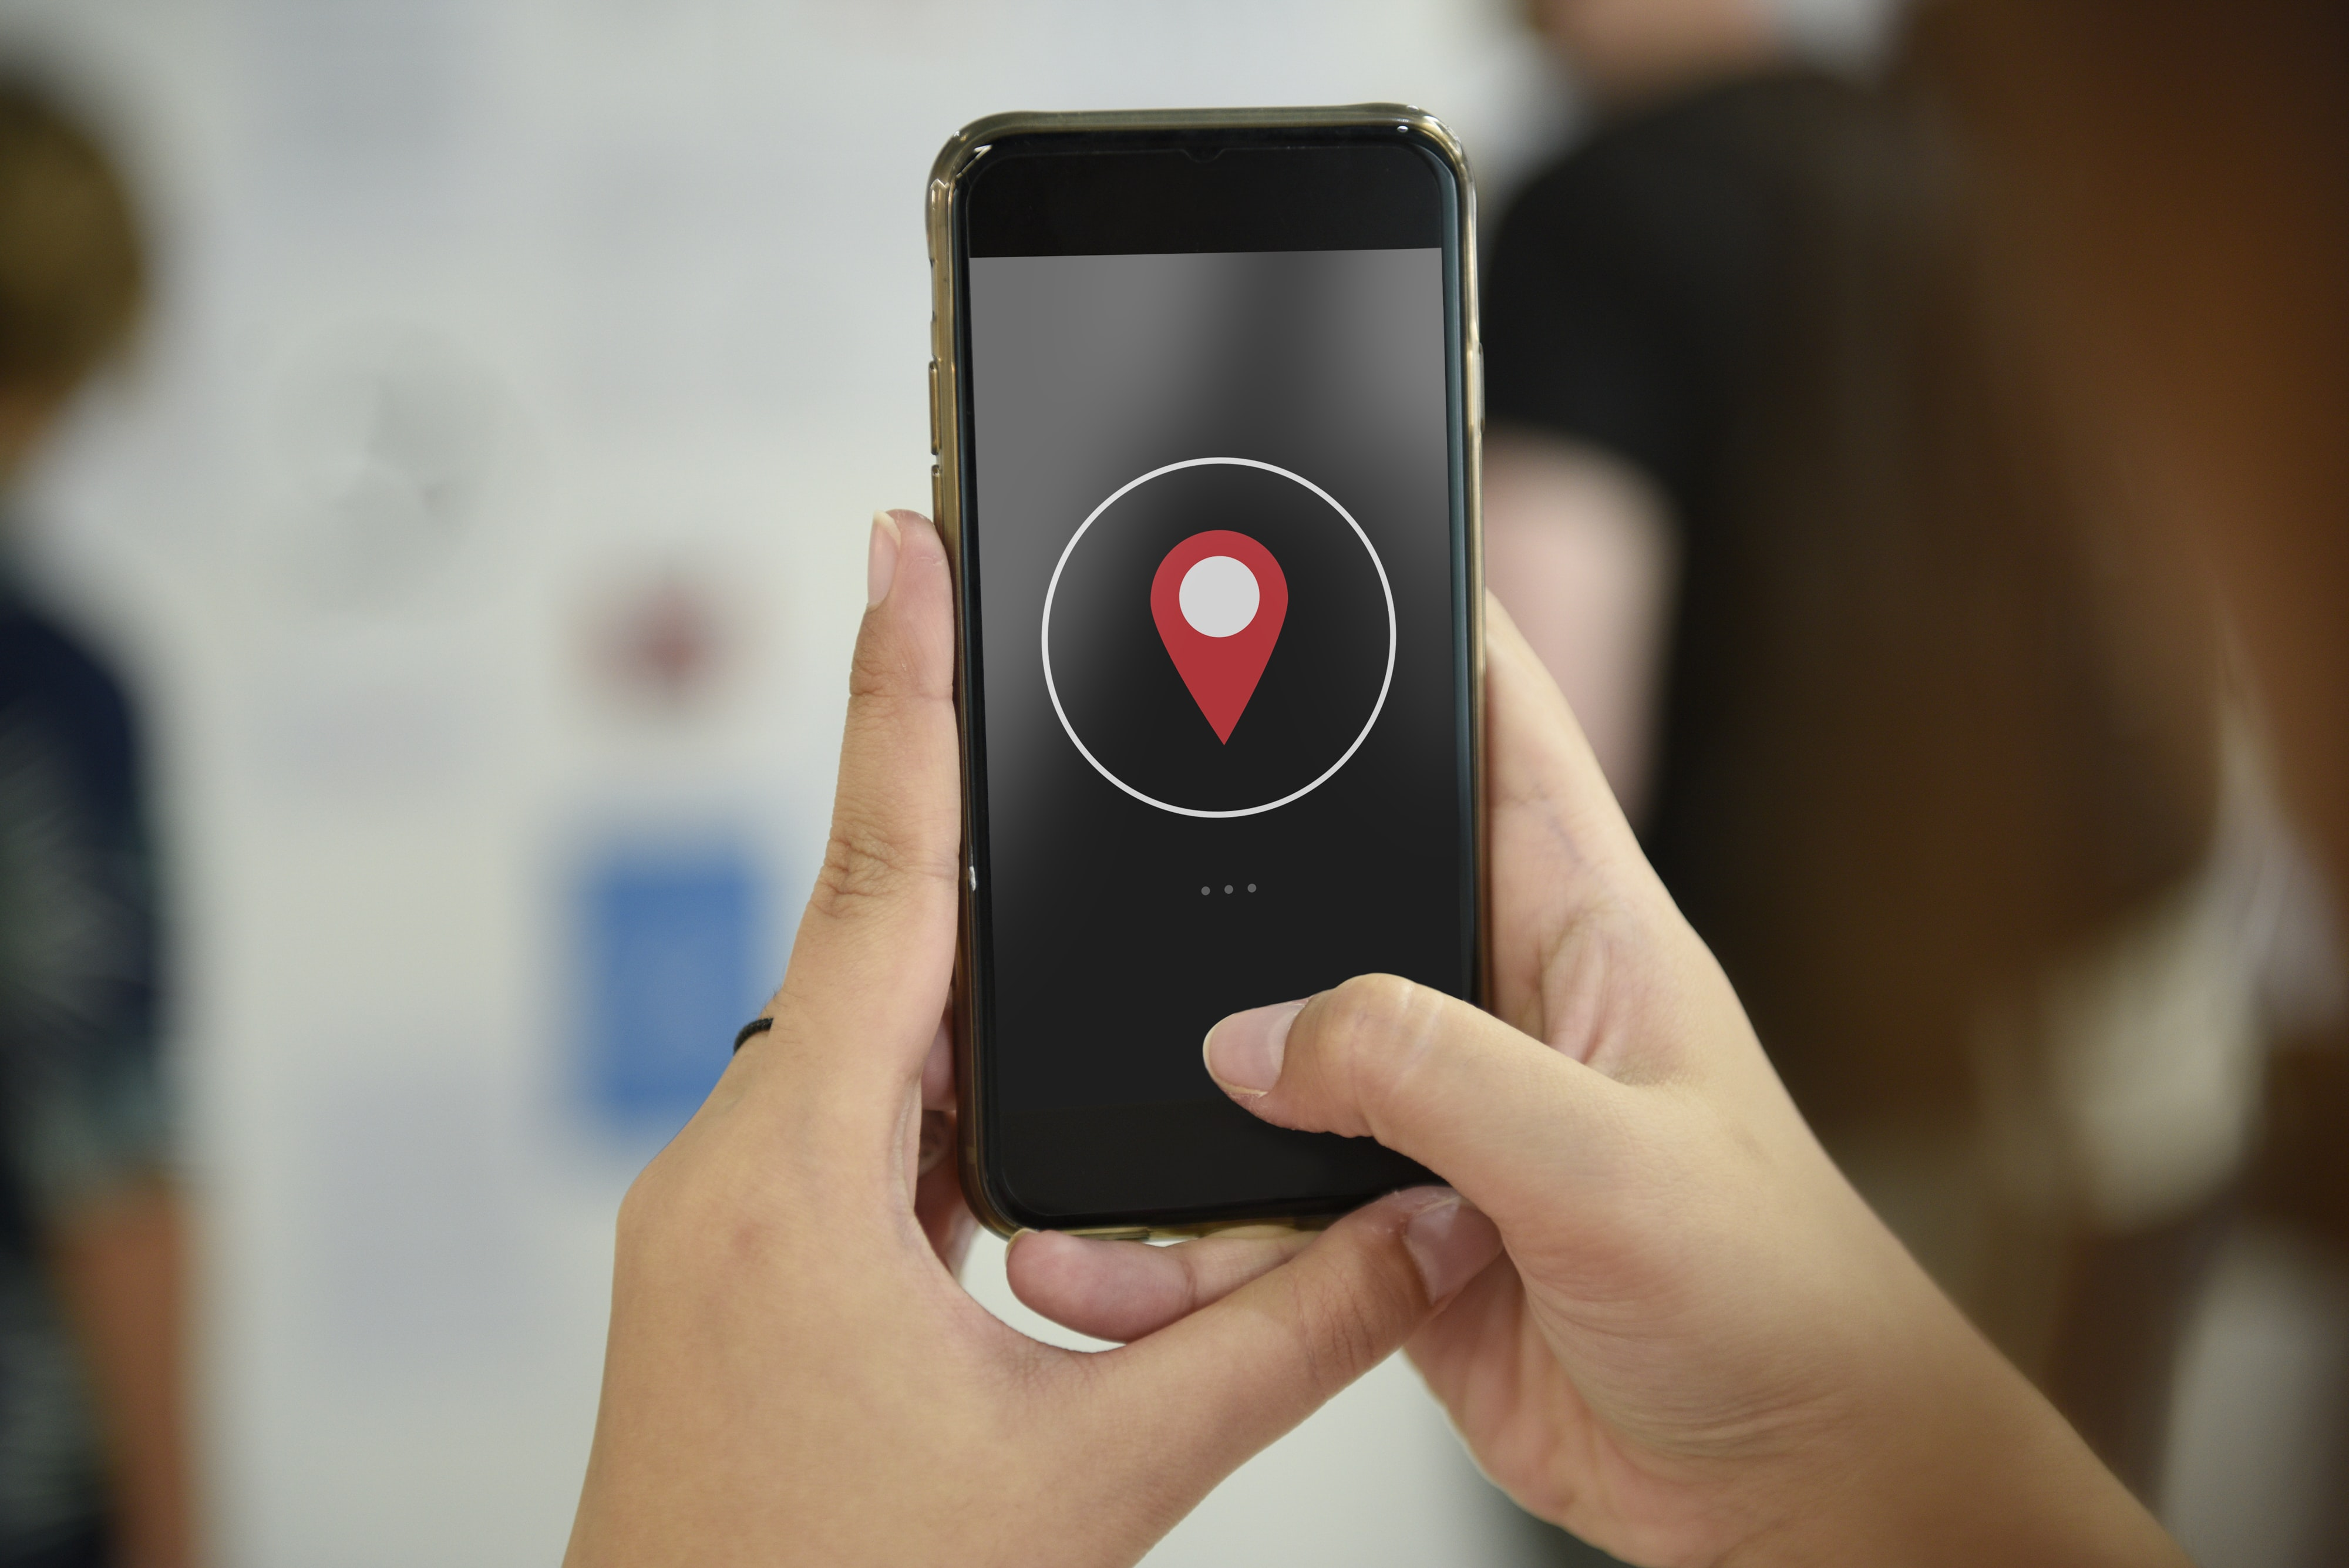 person holding iPhone displaying location